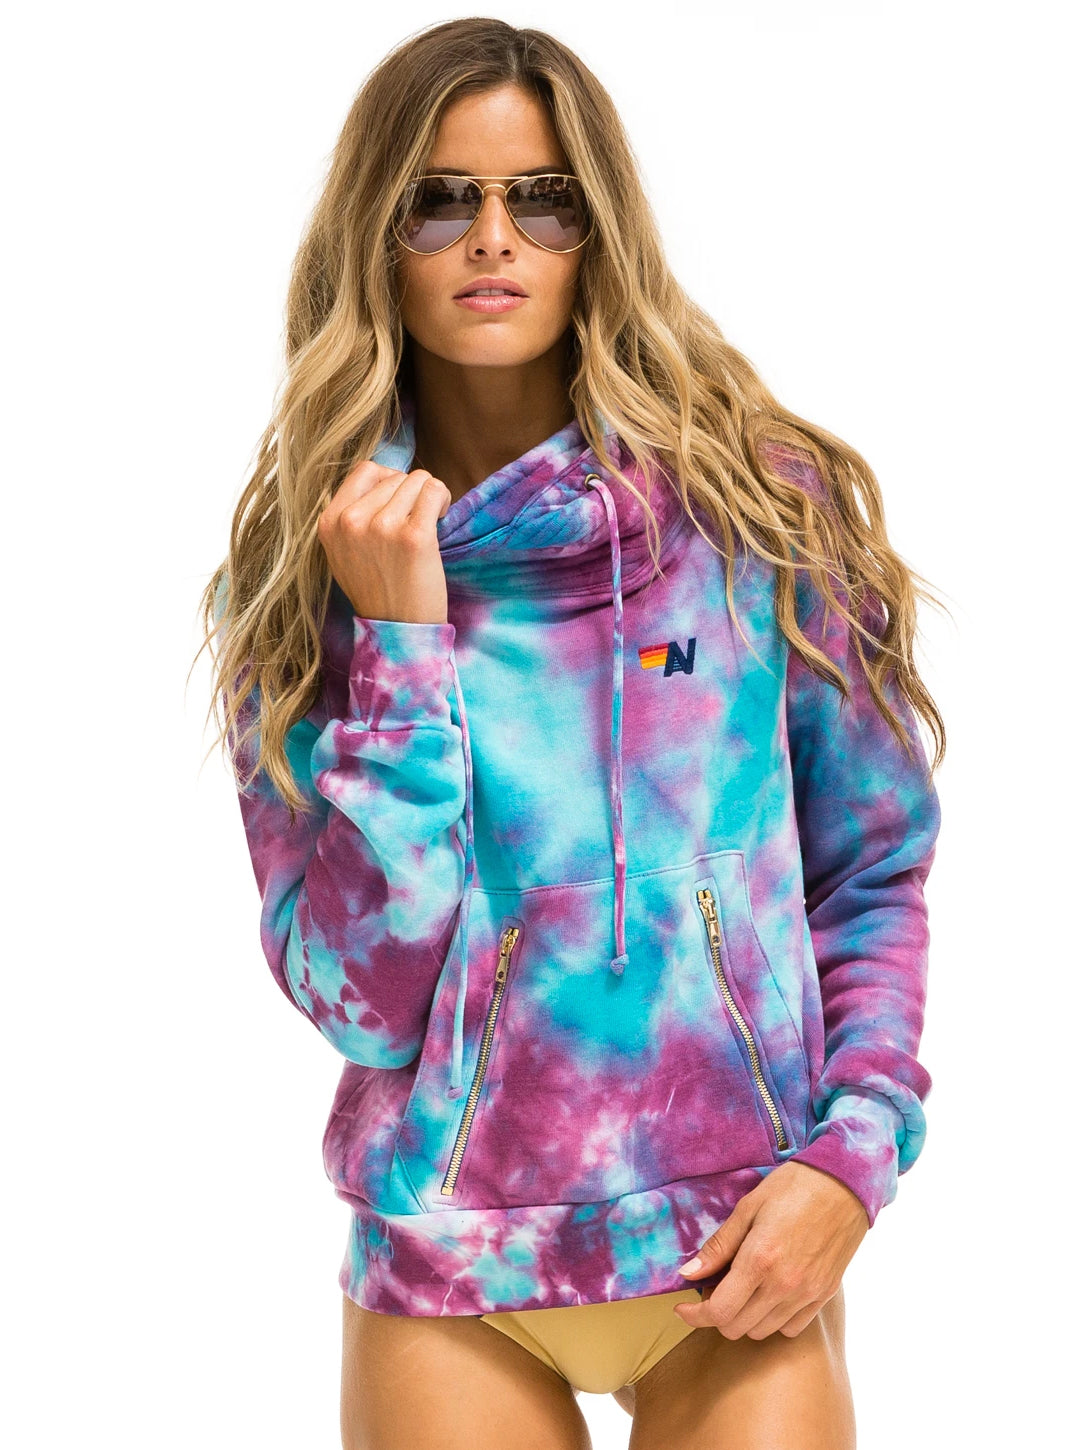 Ninja Pullover Hoodie - Tie Dye Turquoise-AVIATOR NATION-Over the Rainbow